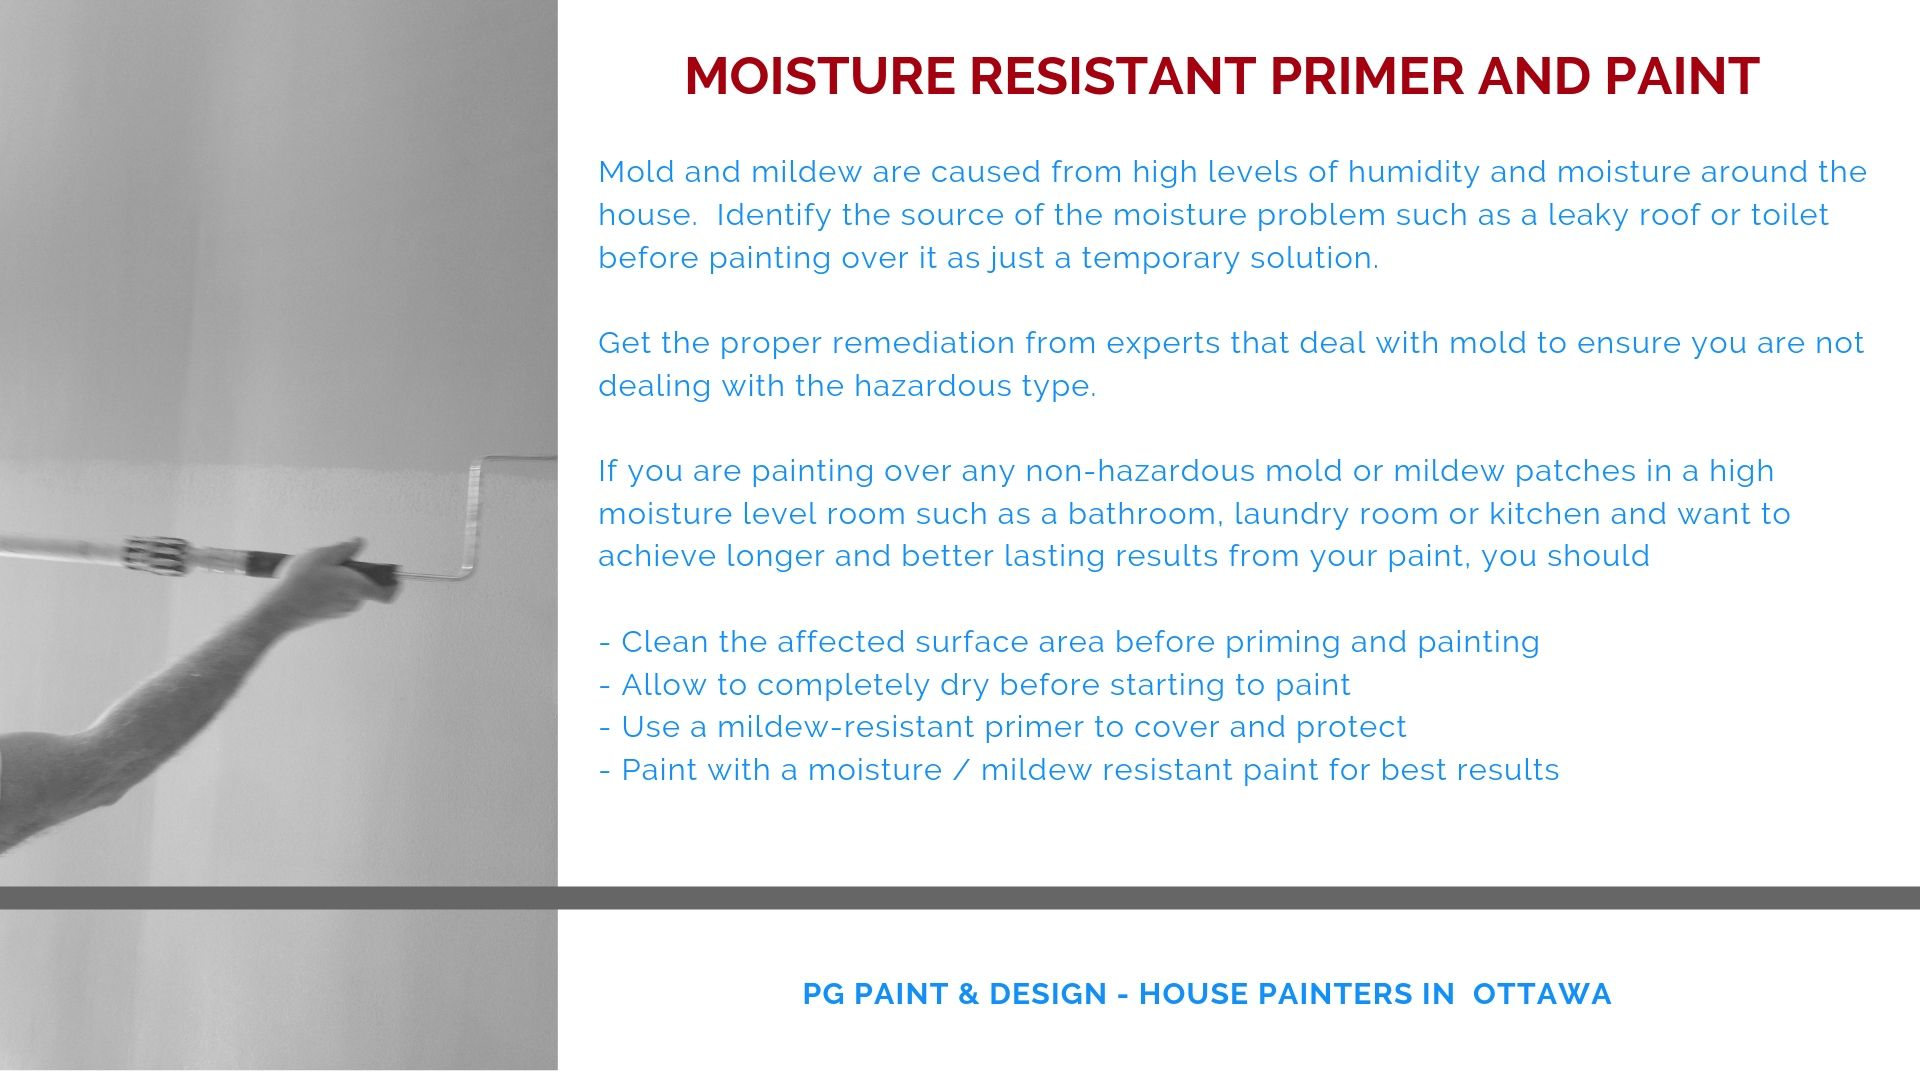 mildew resistant paint primer applied before painting prevents mold and mildew